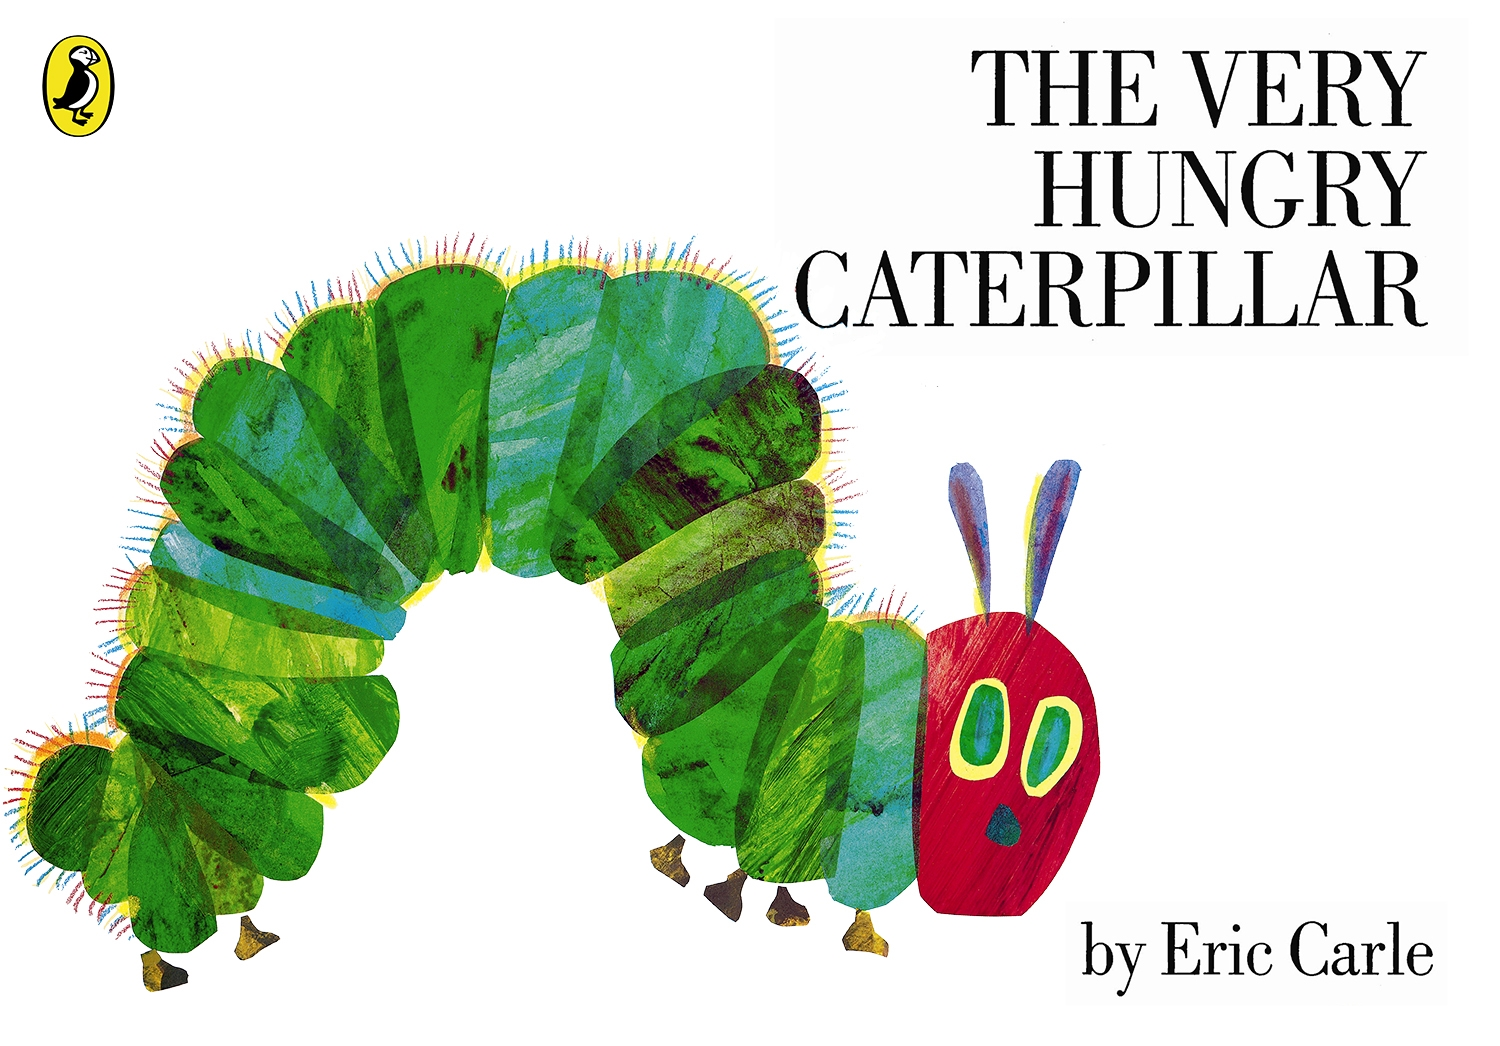 Caterpillar Book Hungry Cover